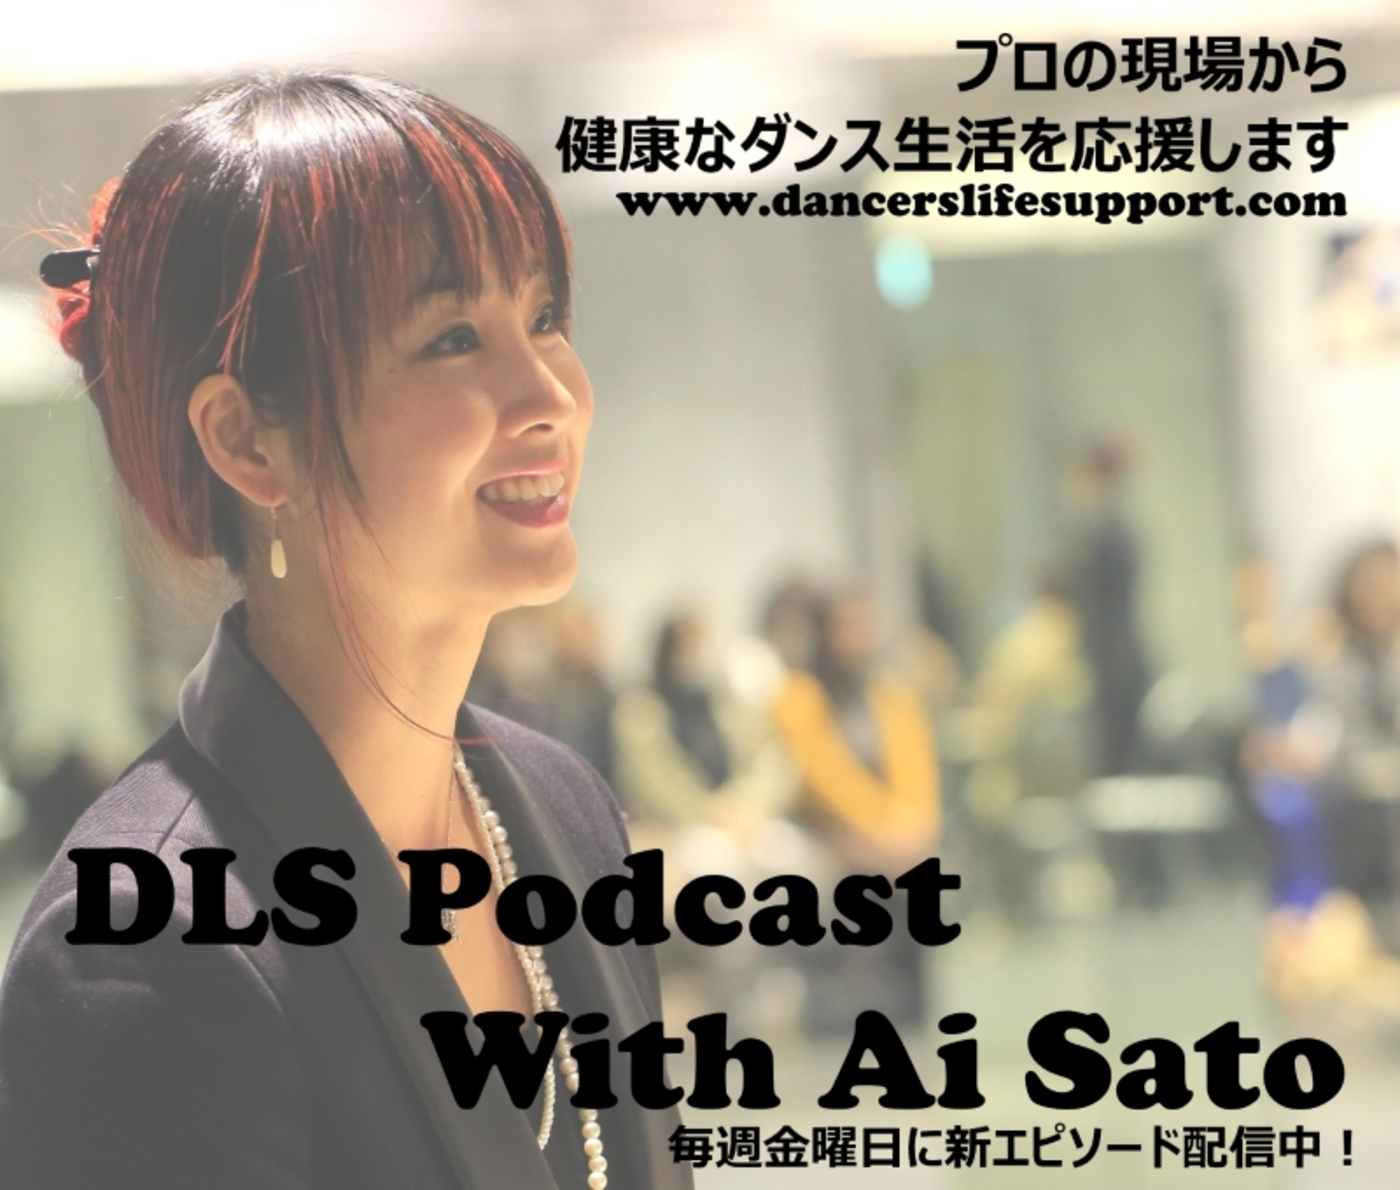 DLS podcast with Ai Sato